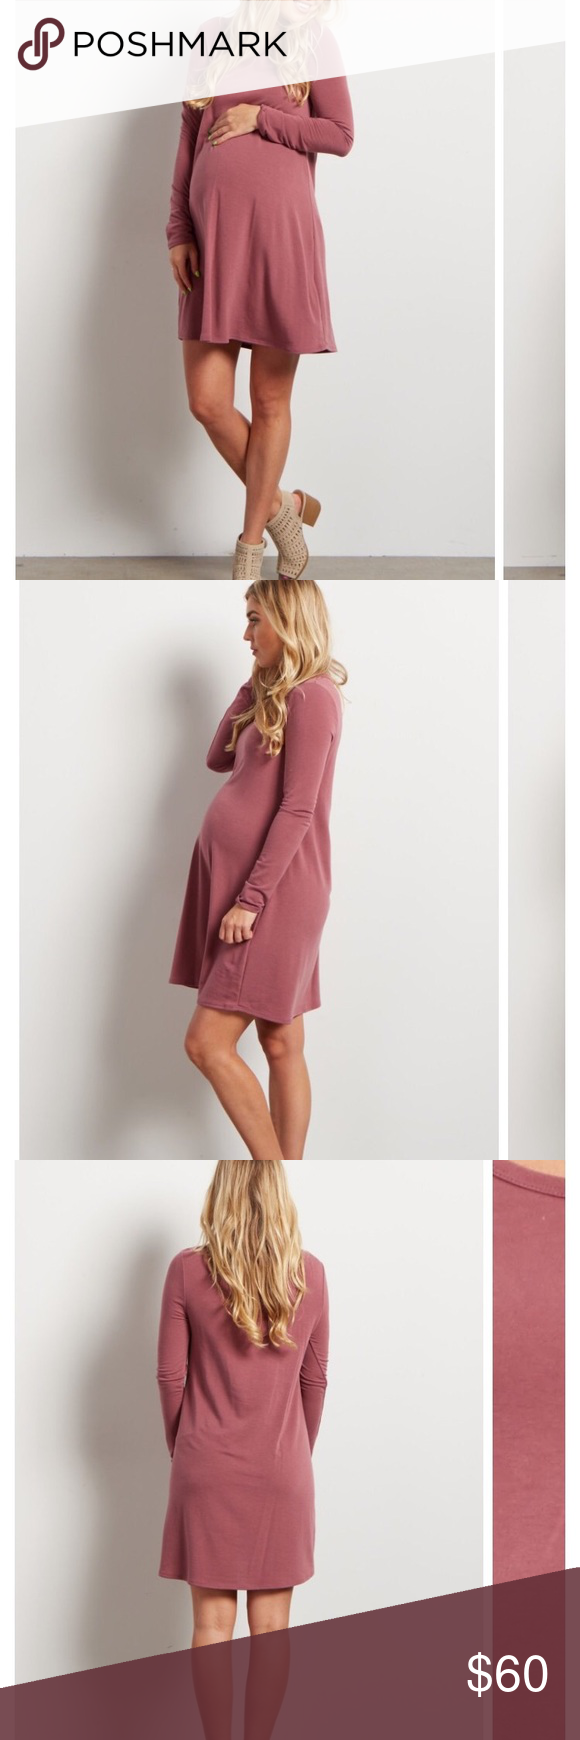 Maternity dress maternity dresses mauve and gold